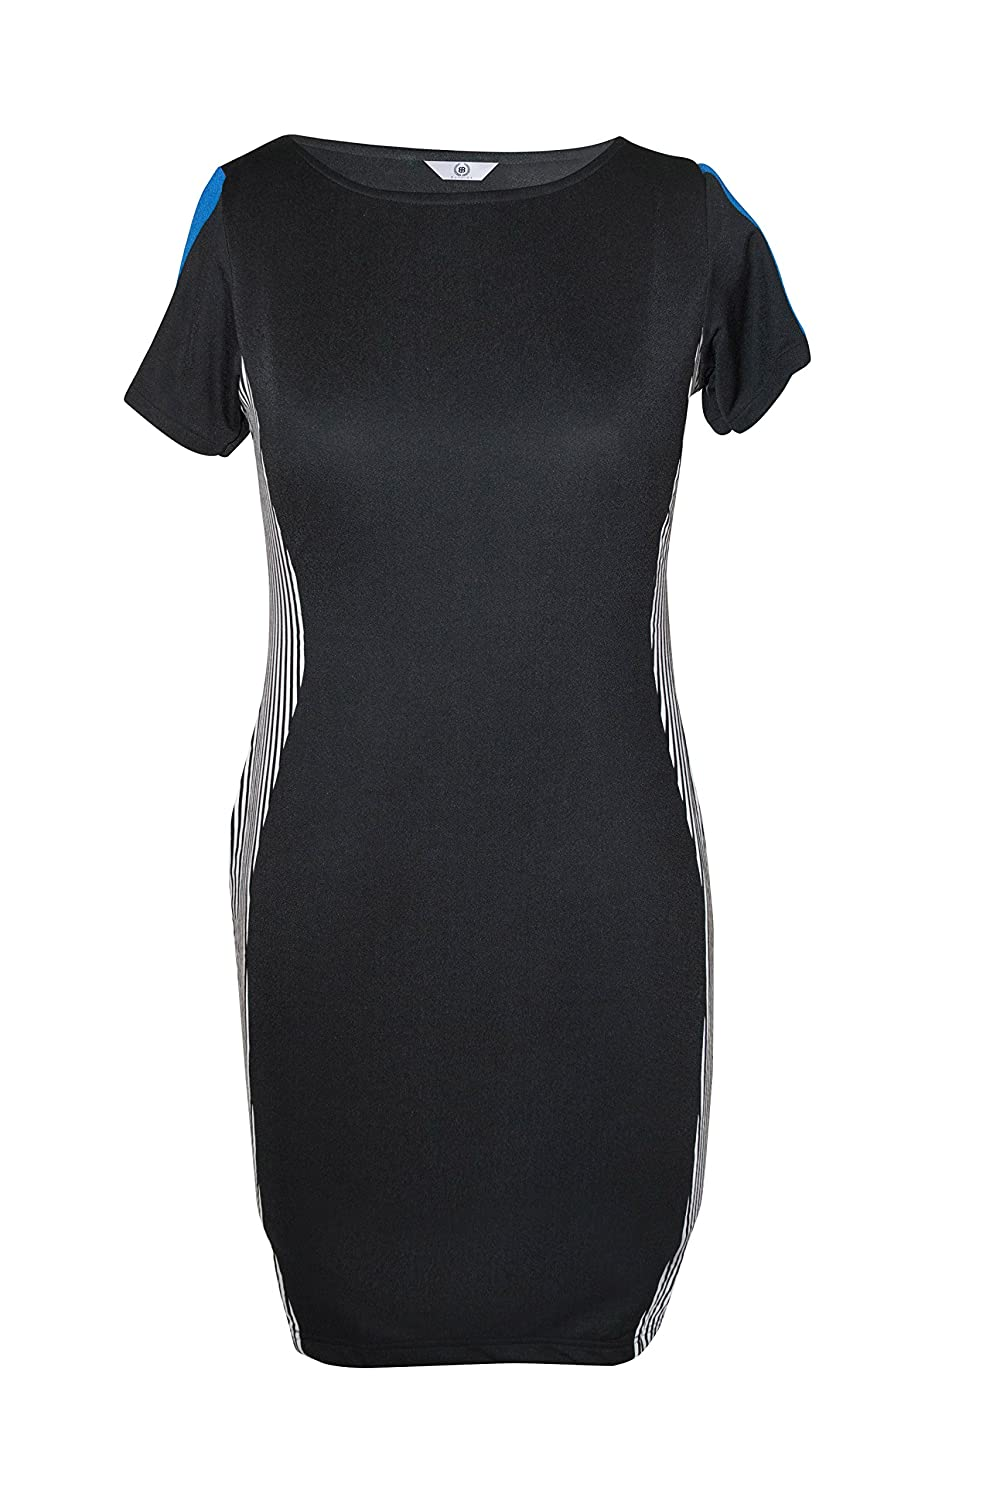 Bayside Woman's Bodycon Black Colored Short Dress With Half Sleeves